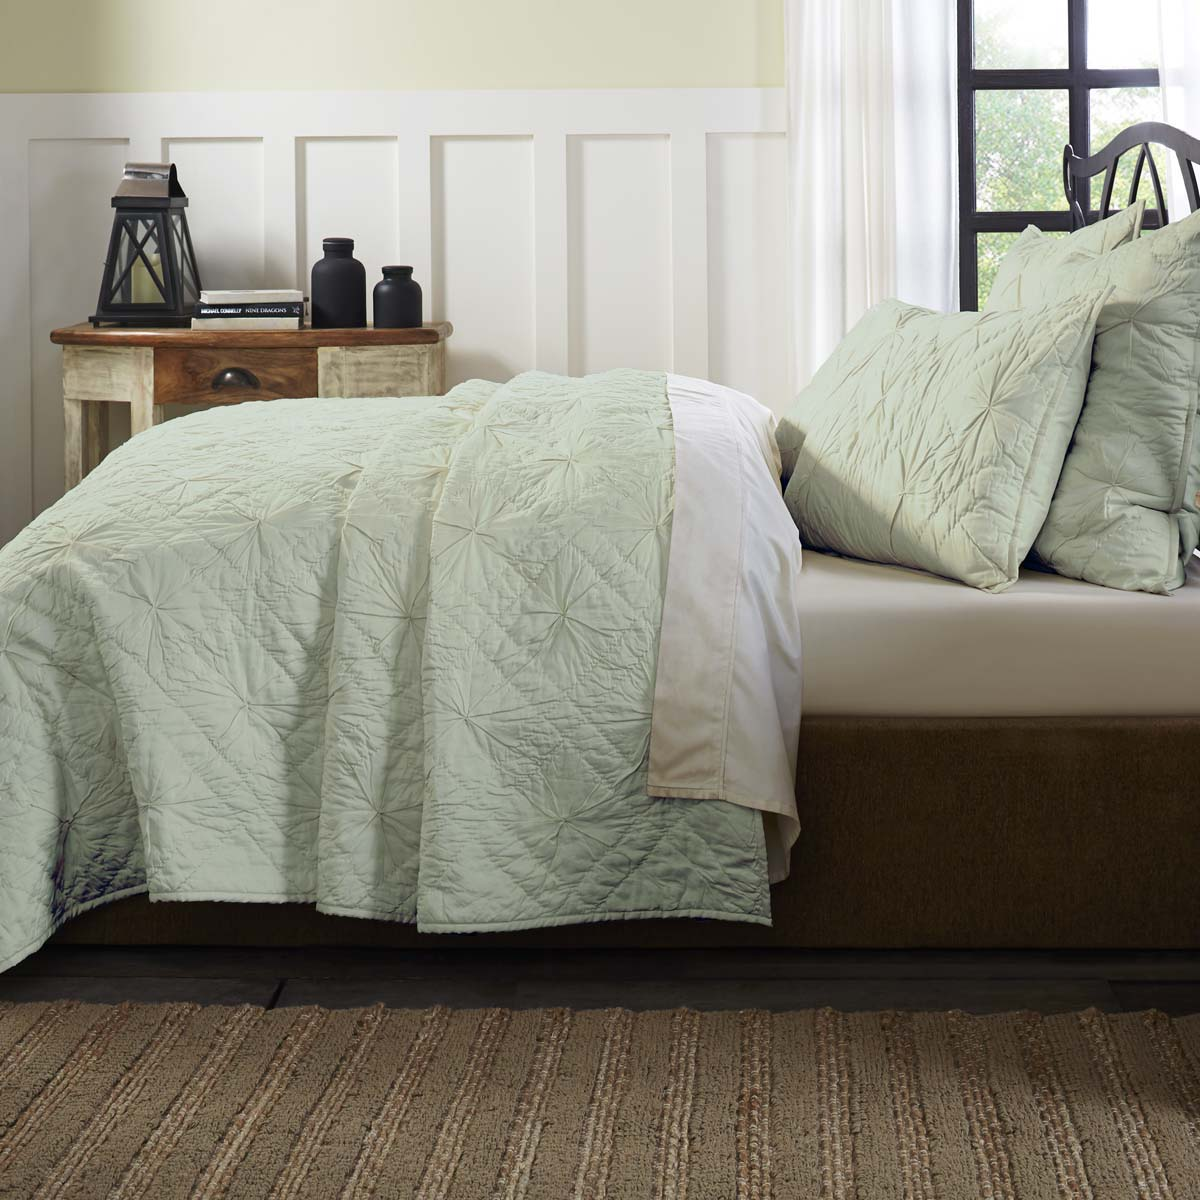 Sea Glass Green Farmhouse Bedding Aubree Cotton Pre-Washed Pleated Solid Color King Quilt